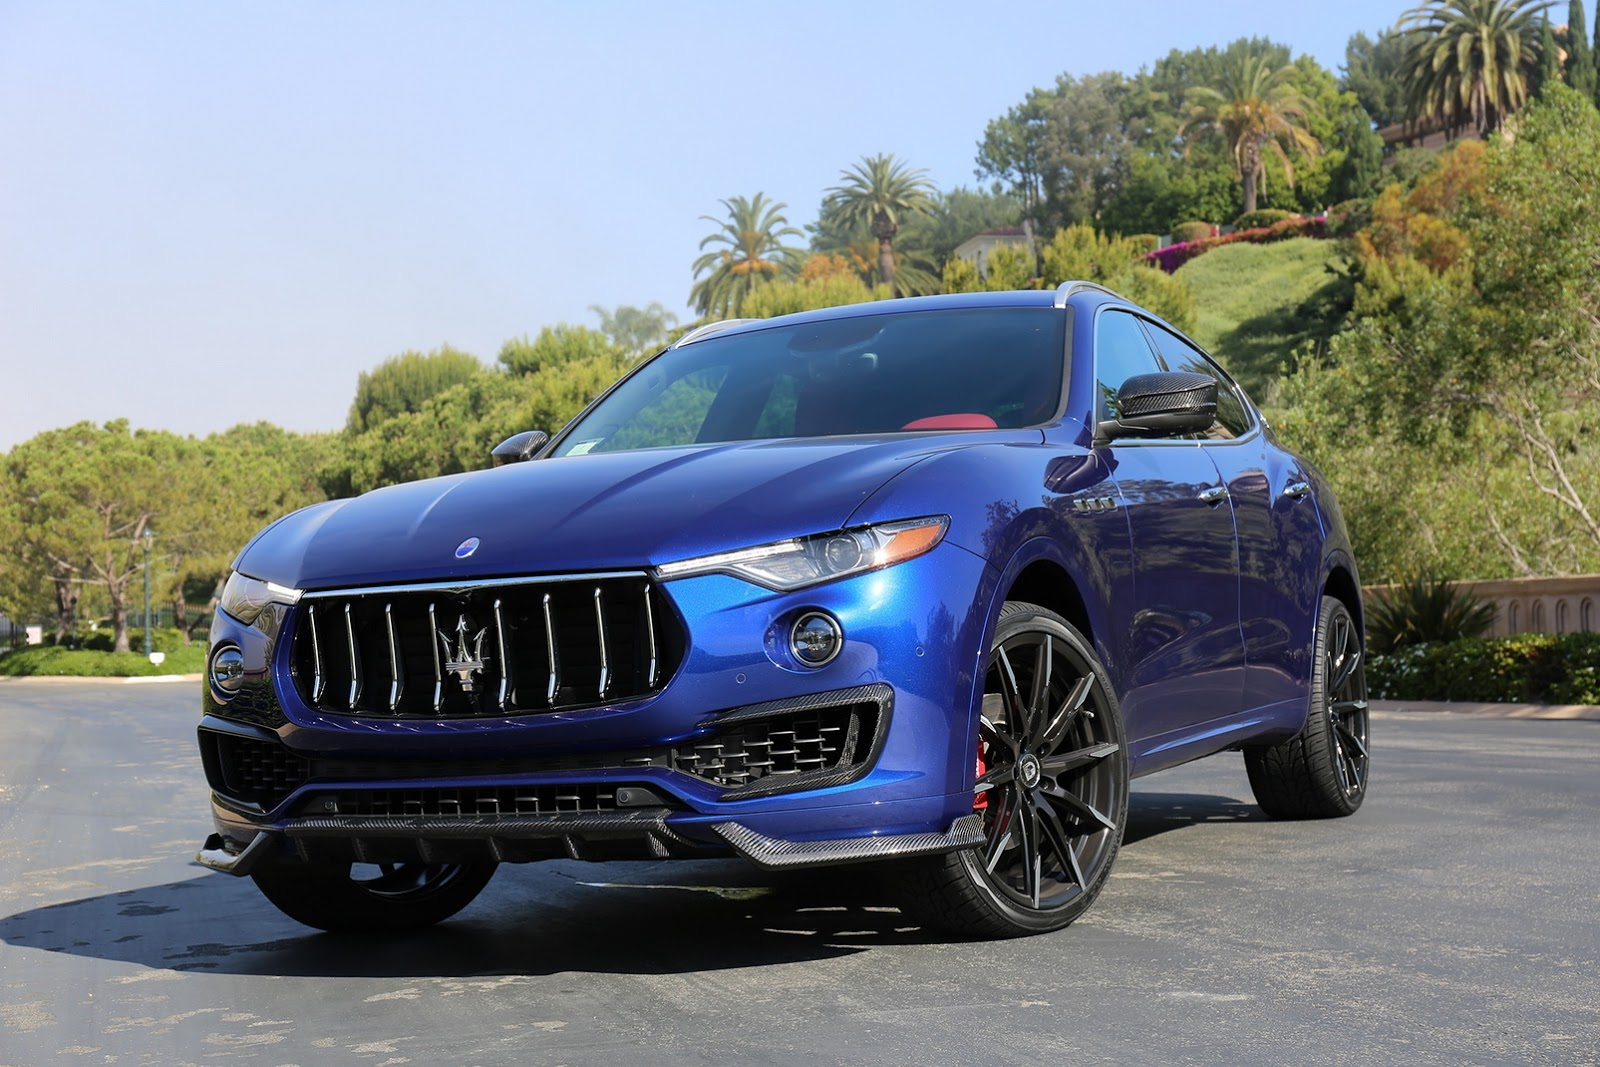 Mercedes Glc Coupe Tuning >> Larte Design Gives Maserati Levante Carbon Upgrades and More Presence